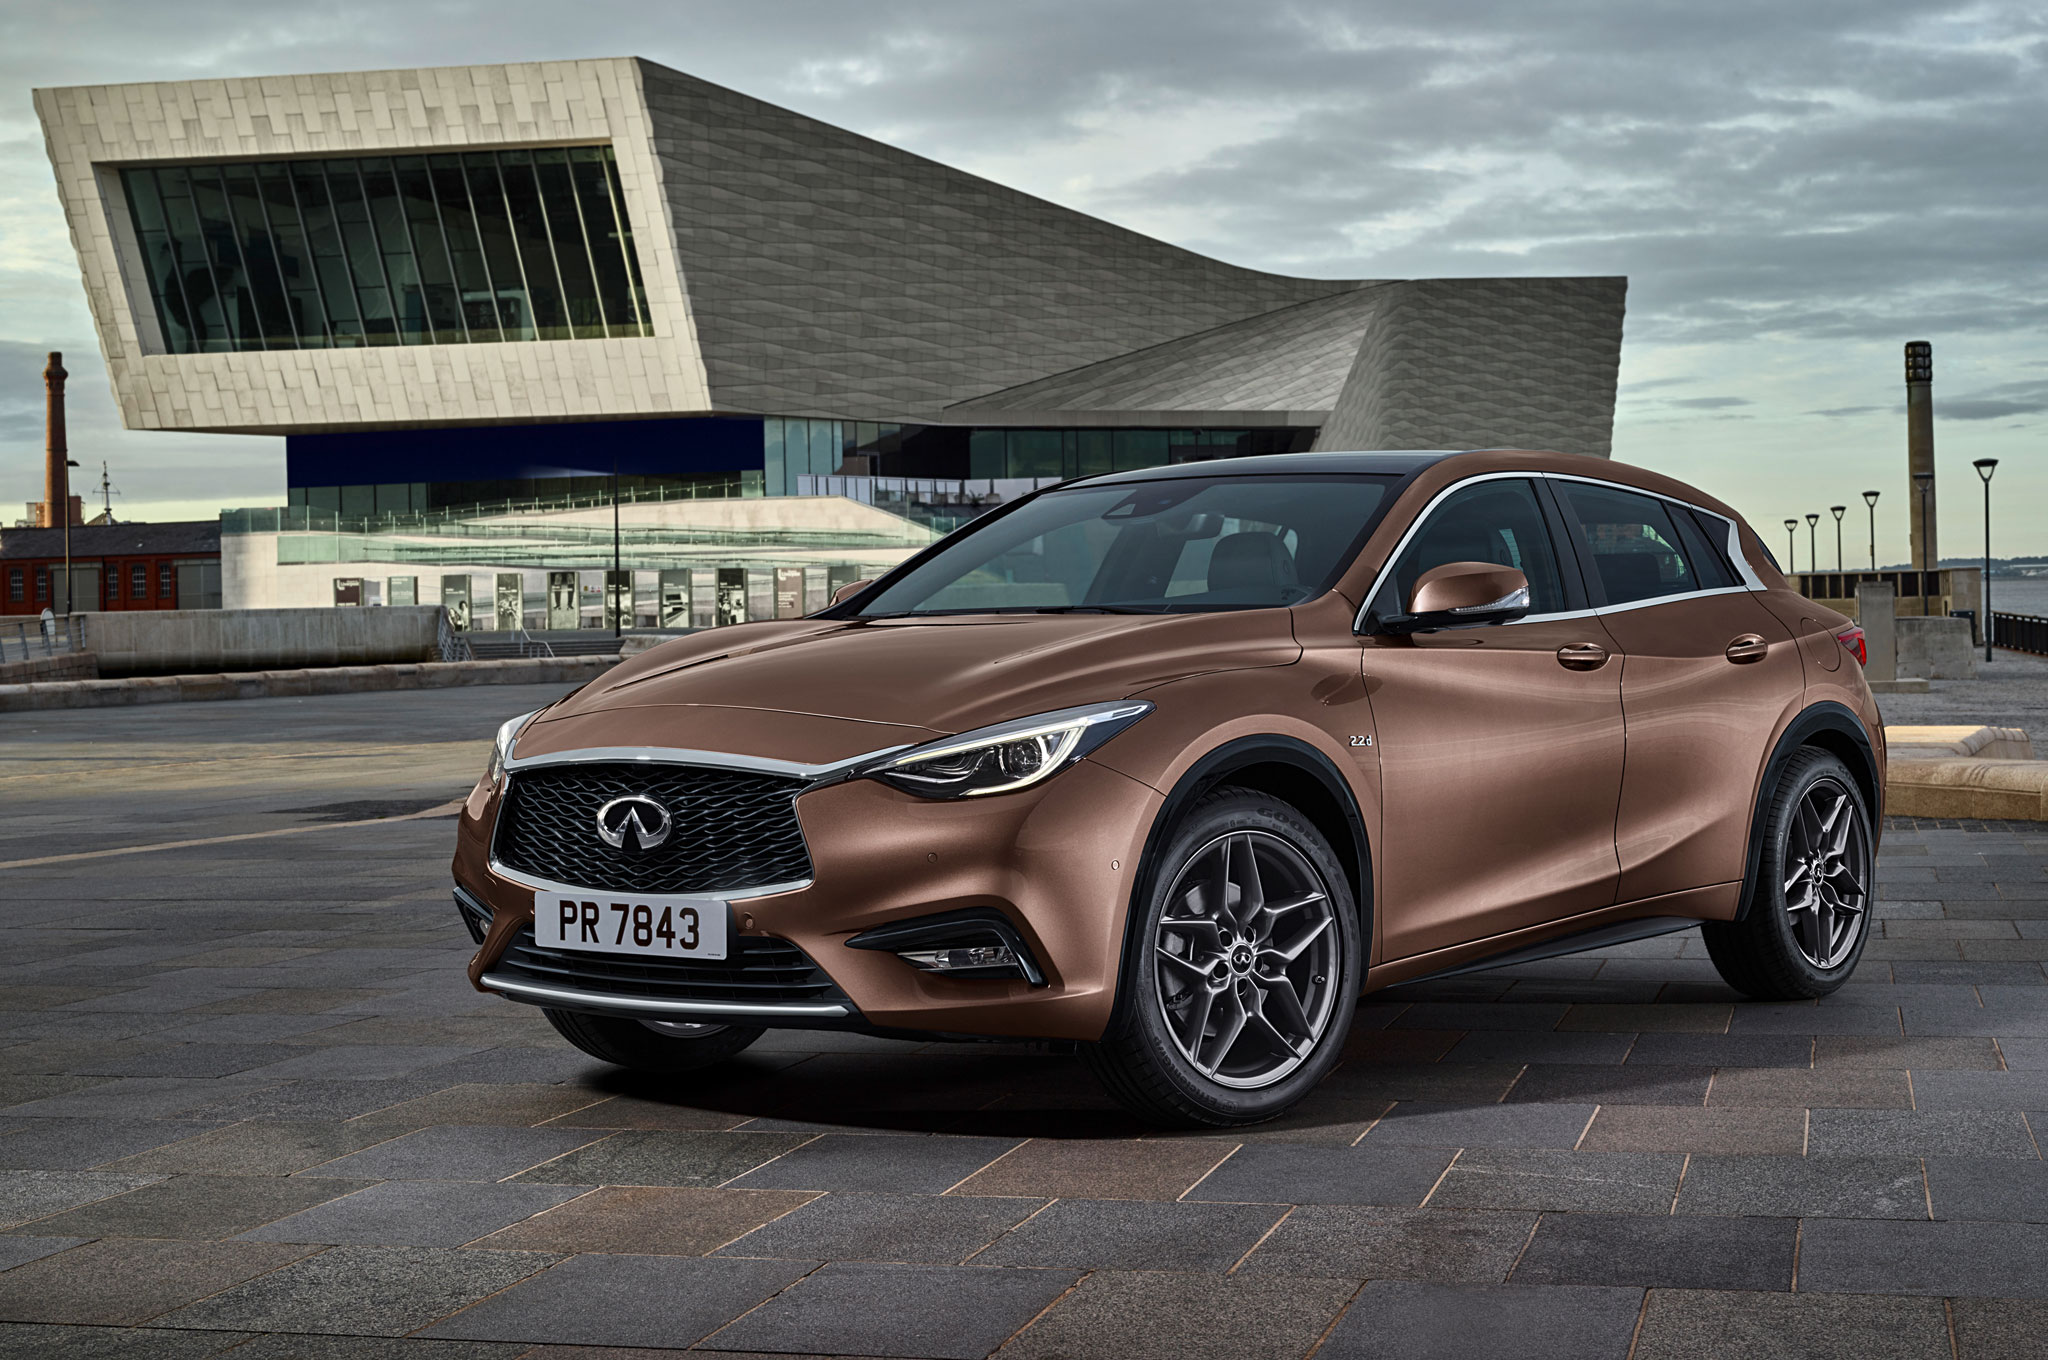 2017 Infiniti Q30 Luxury Hatchback Front Three Quarter 02